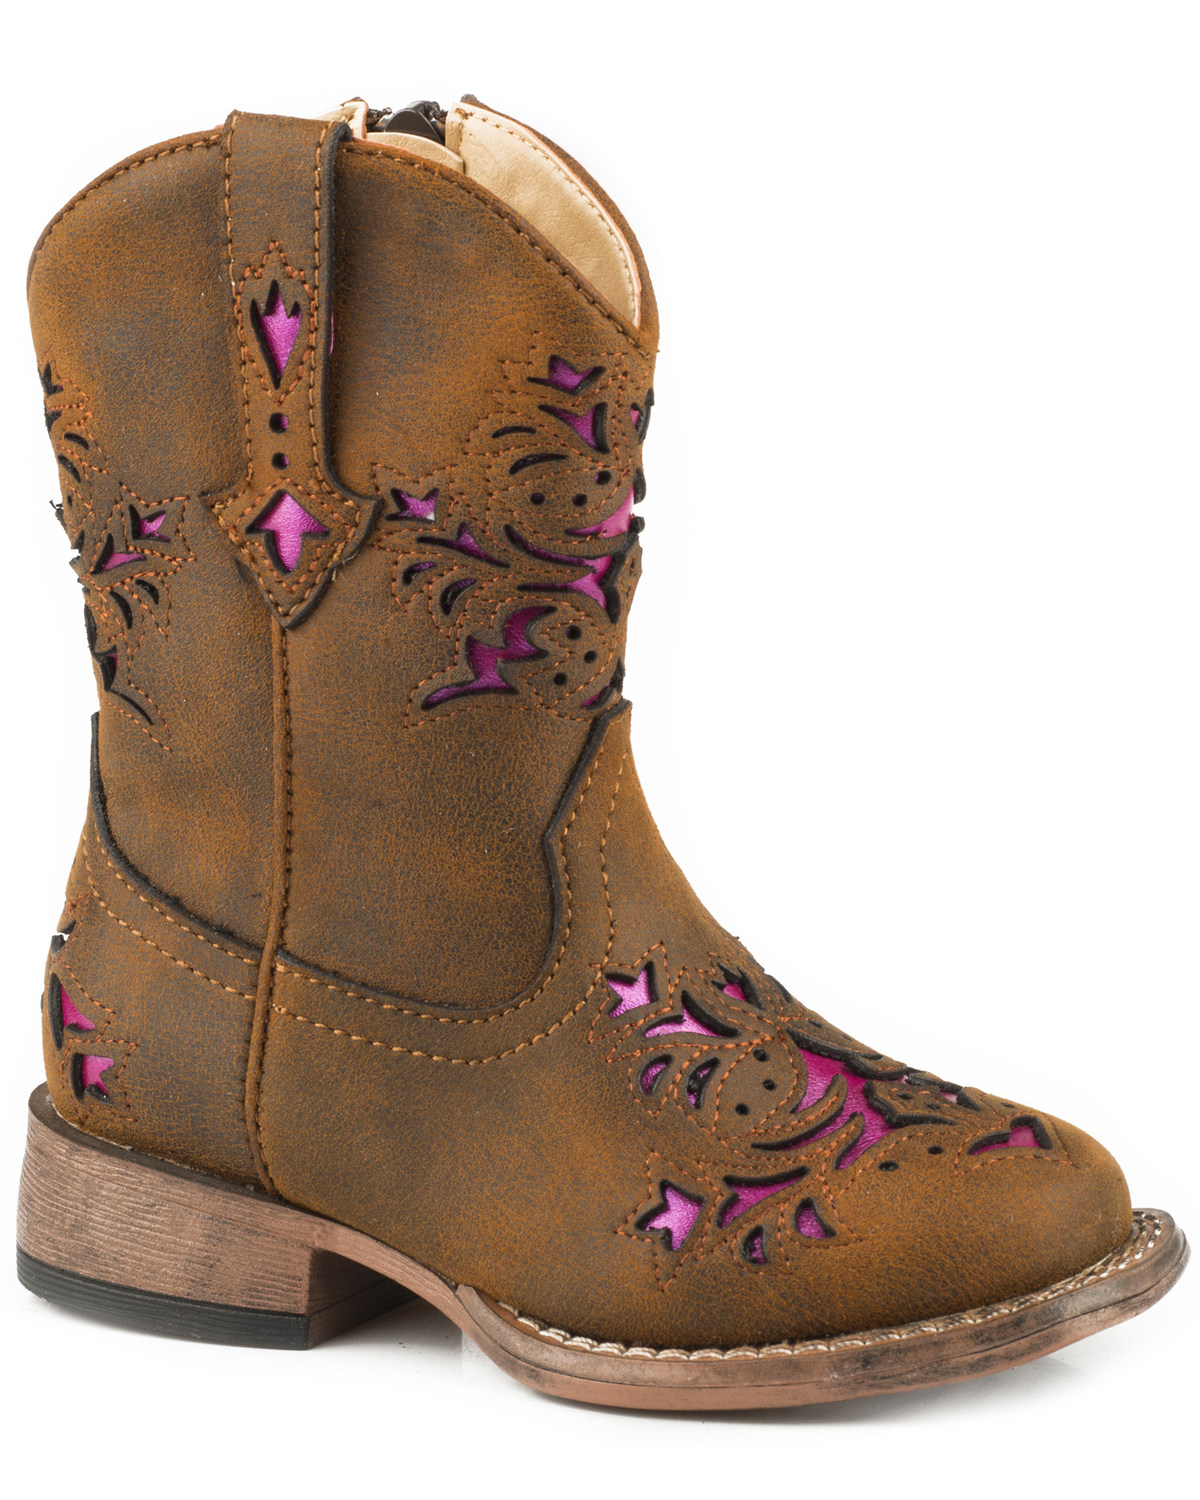 db1c33d2f08 Roper Toddler Girls' Lola Brown Metallic Underlay Cowgirl Boots - Square Toe